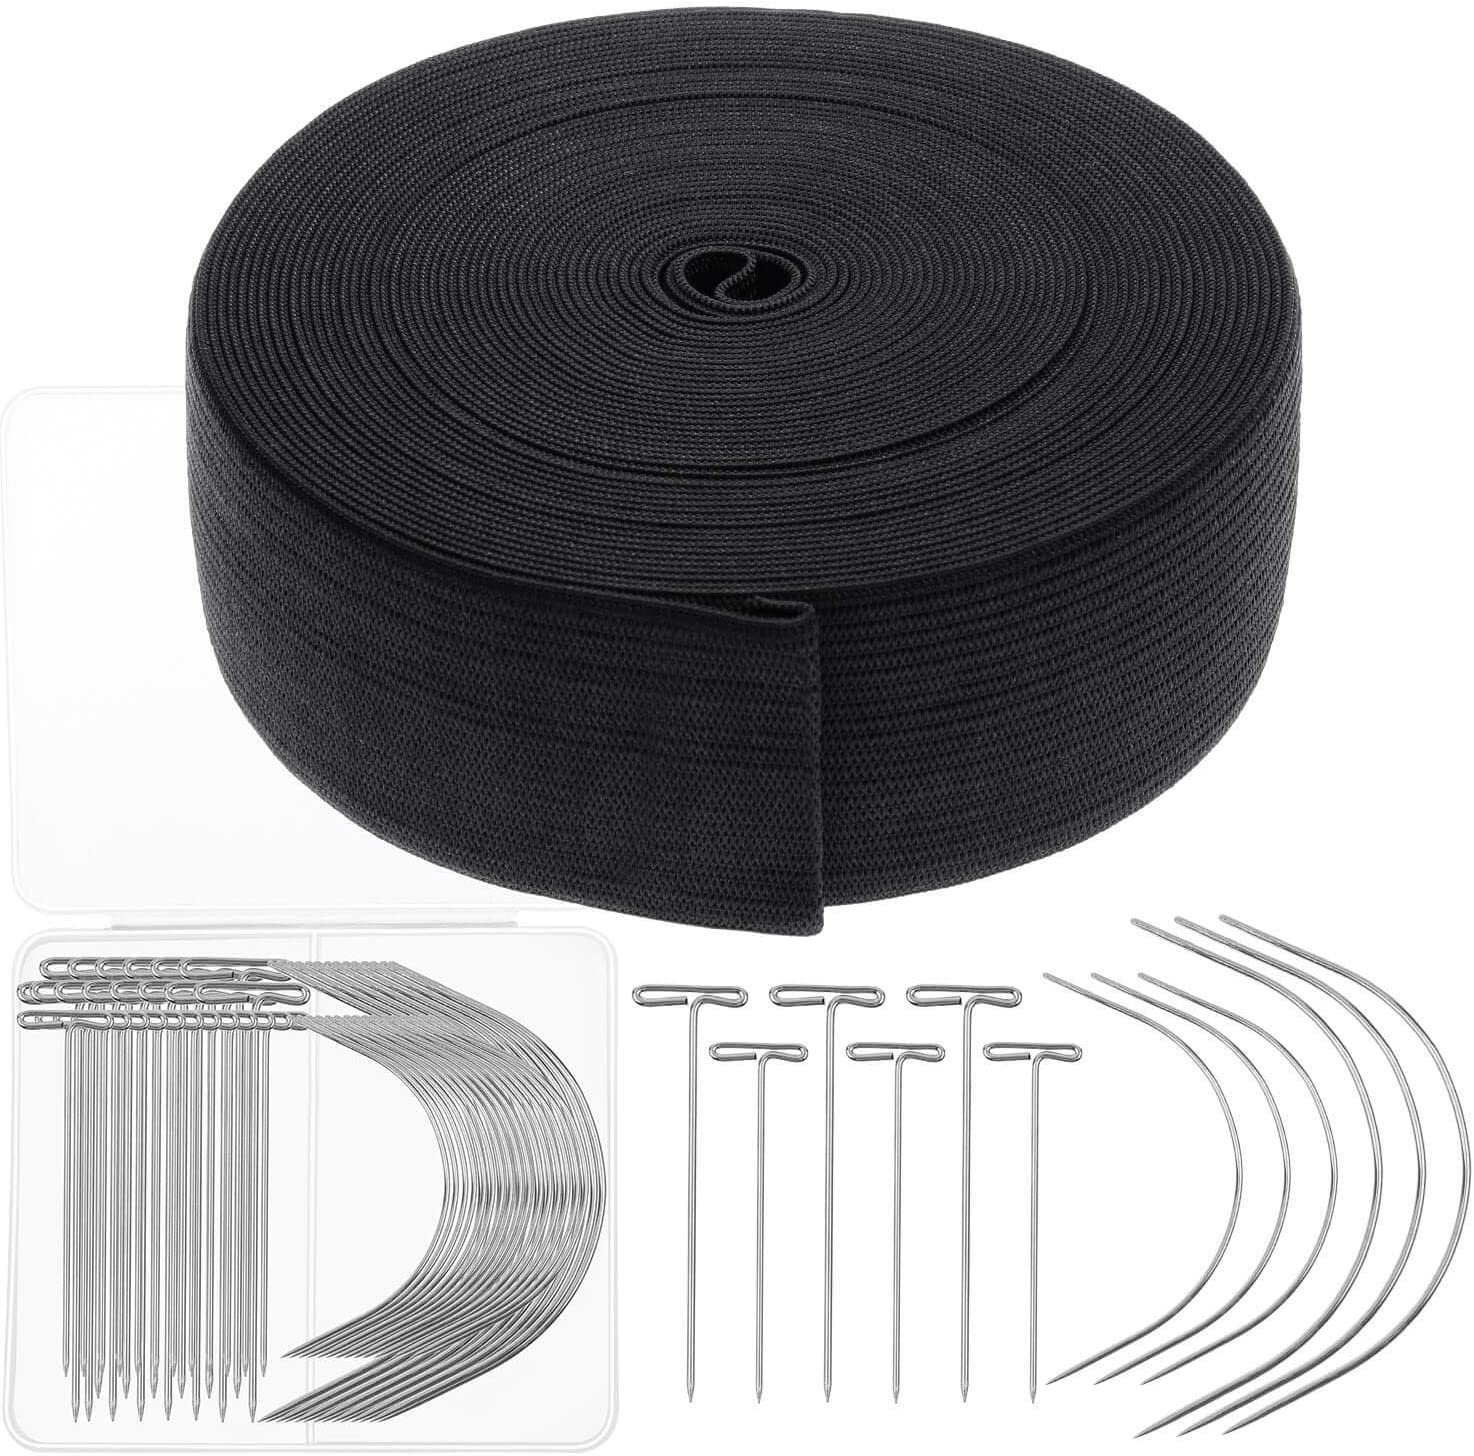 Amazon Com Elastic Band For Wigs Cridoz Black Elastic Wig Band Elastic Strap Spool With 60pcs Weaving Needles And T Pins For Wigs And Sewing 1 5 Inch X 11 Yard